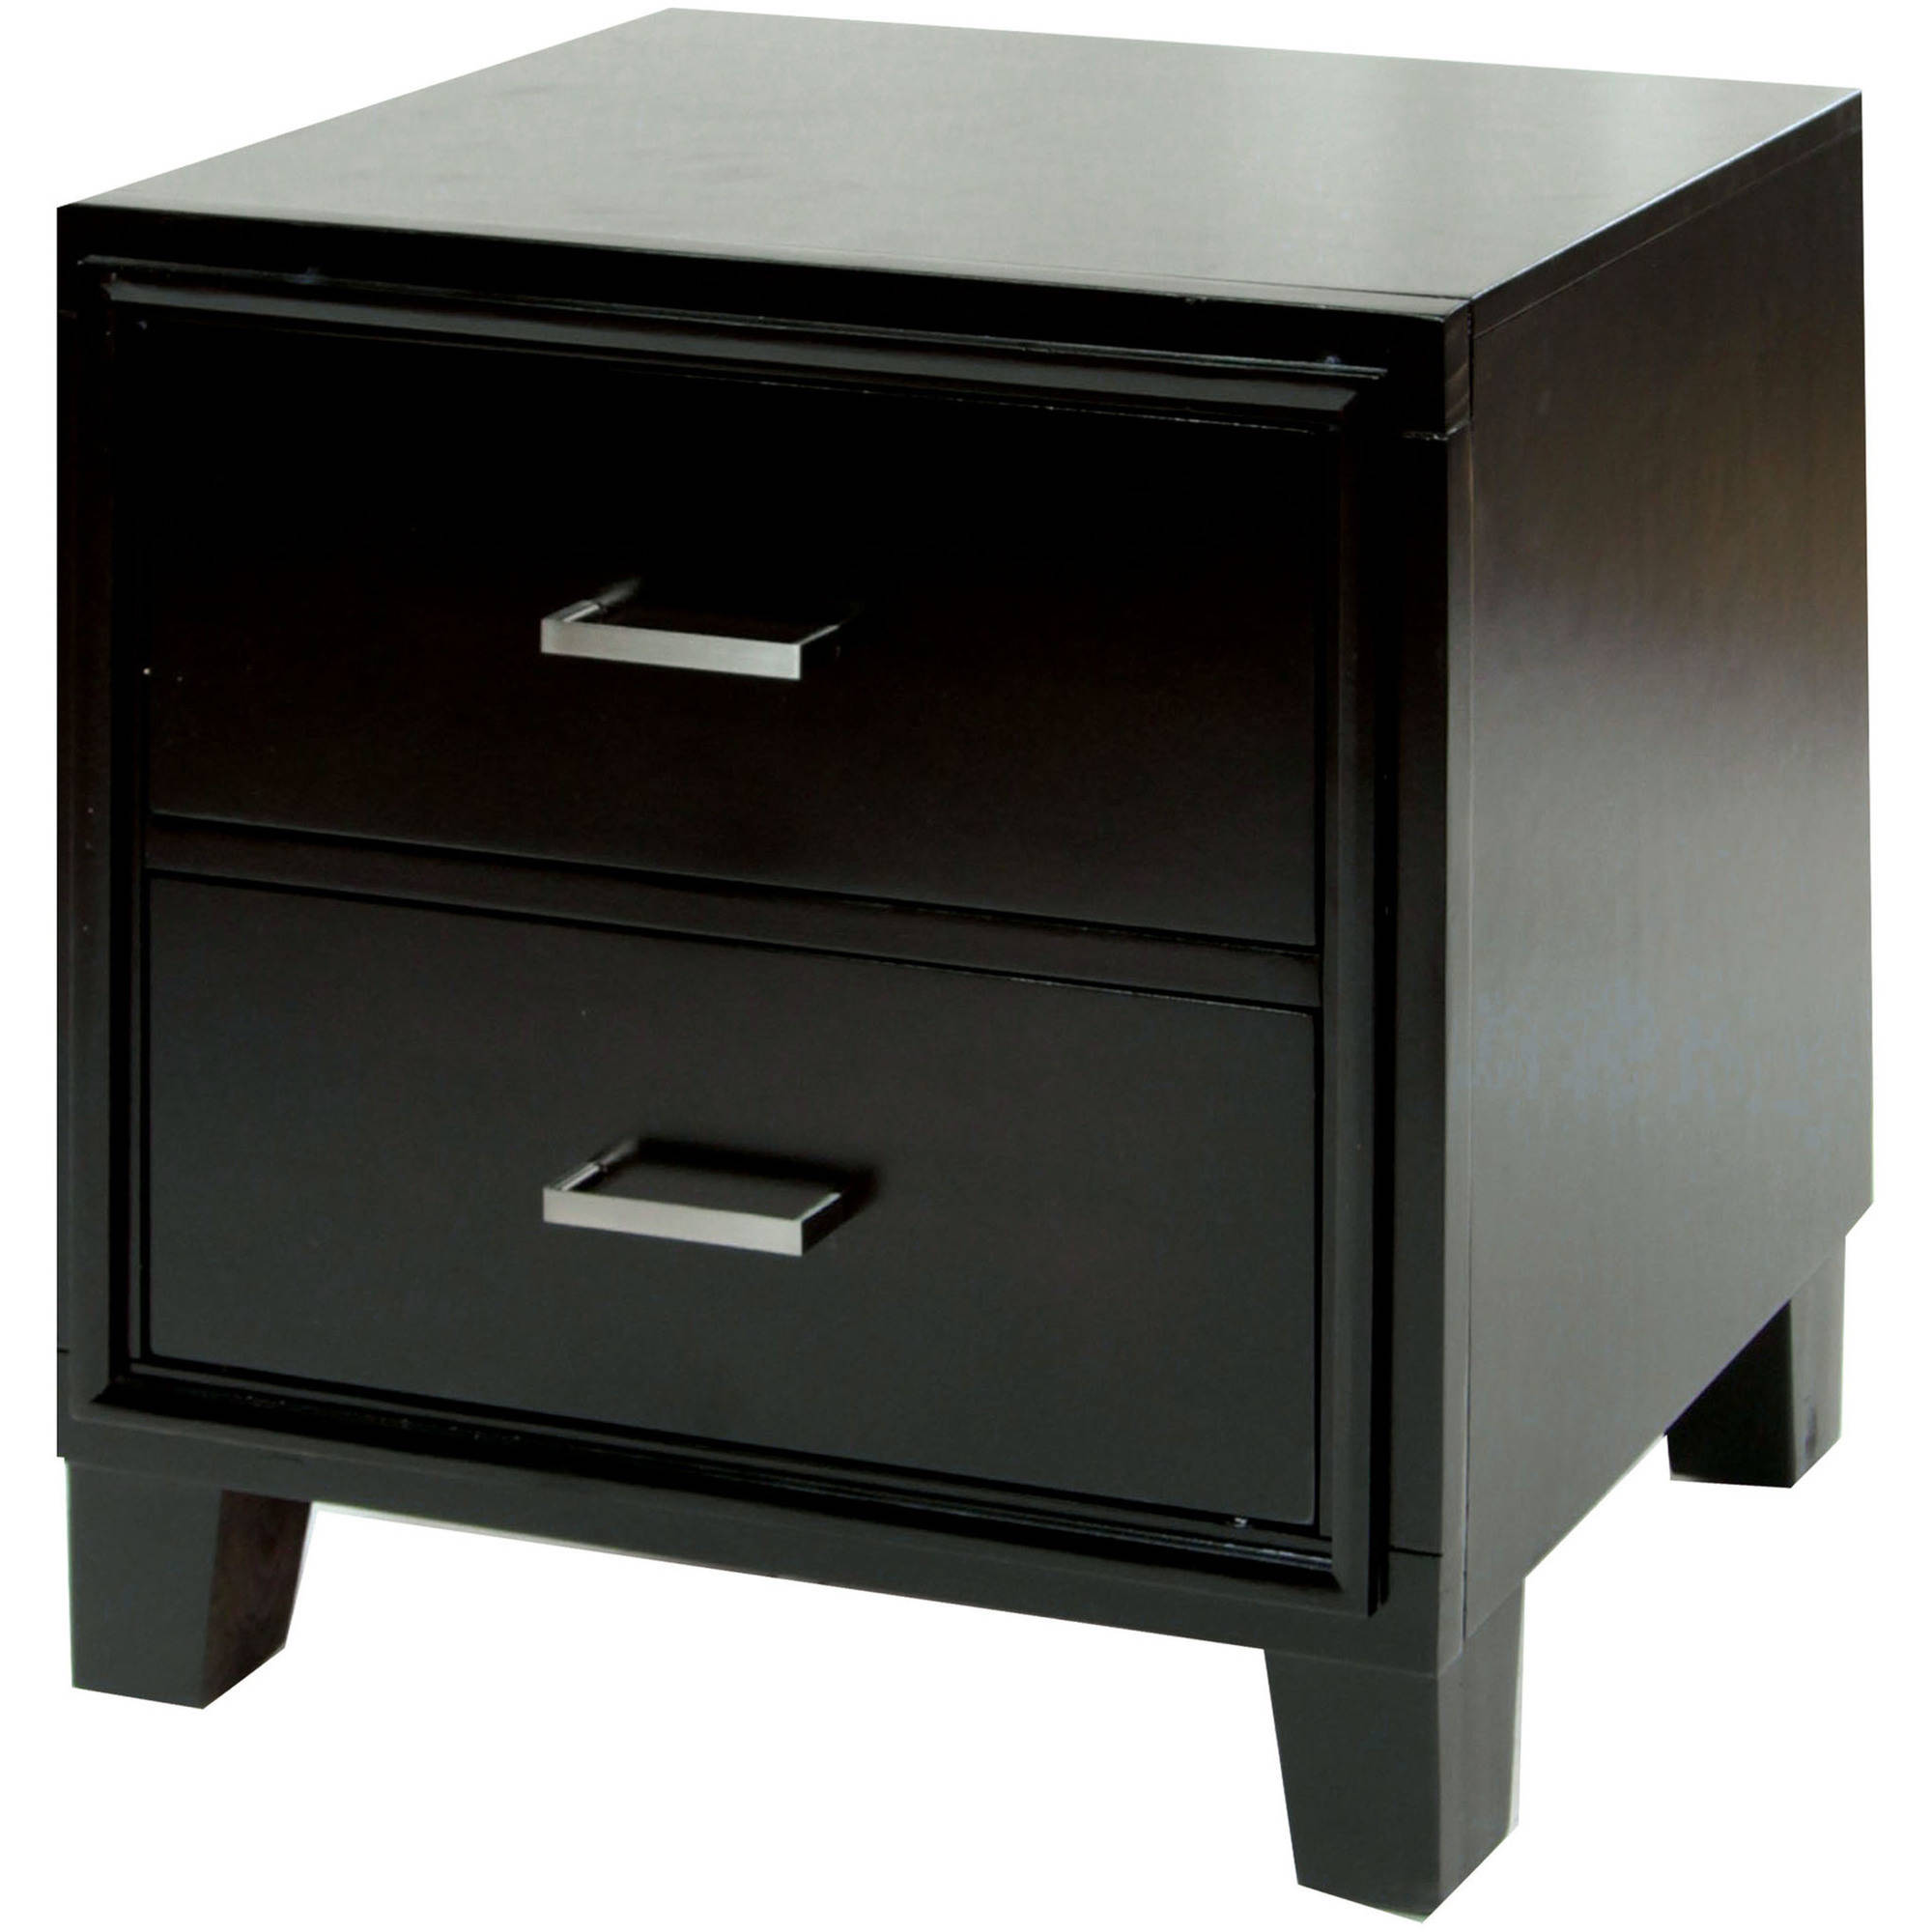 Furniture of America Kate Contemporary 2-Drawer Nightstand, Espresso